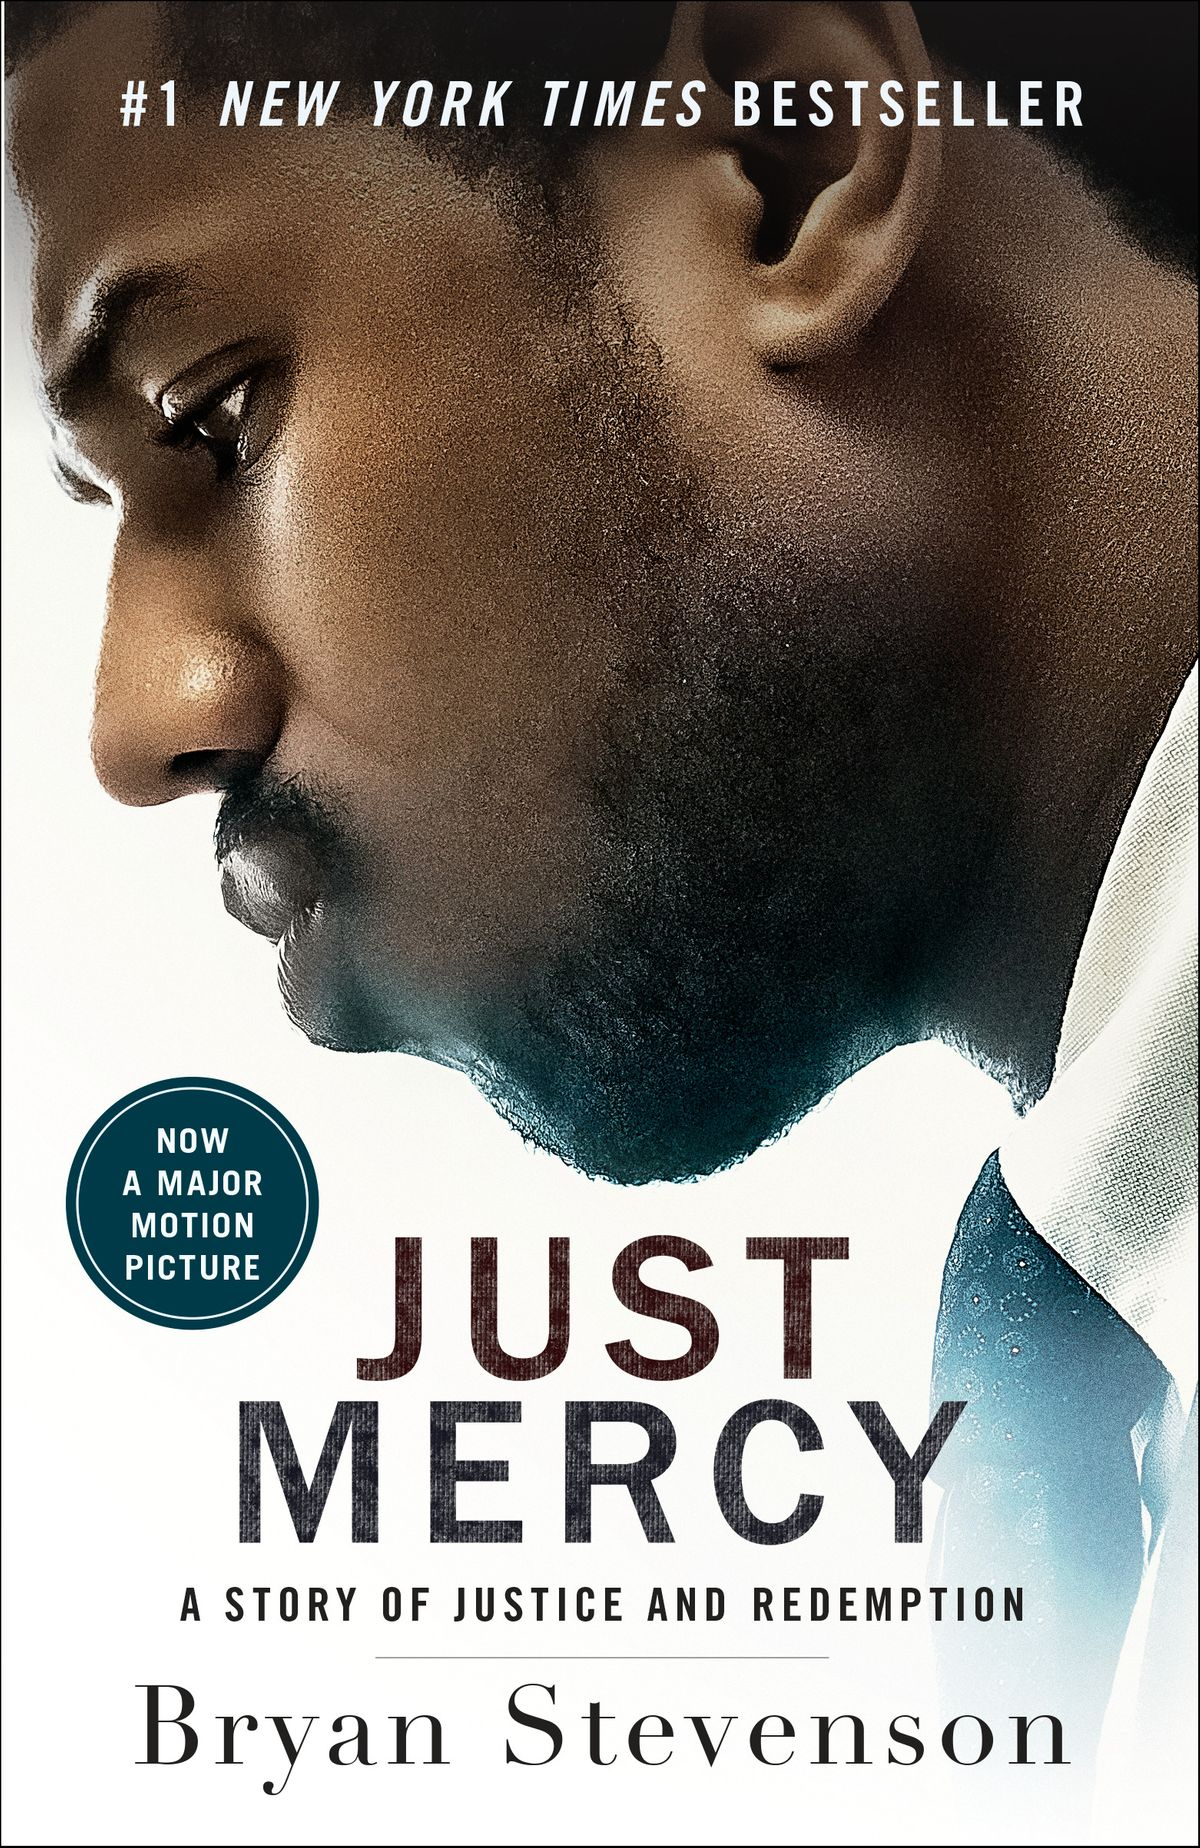 Just Mercy Movie Tie-in Book Cover